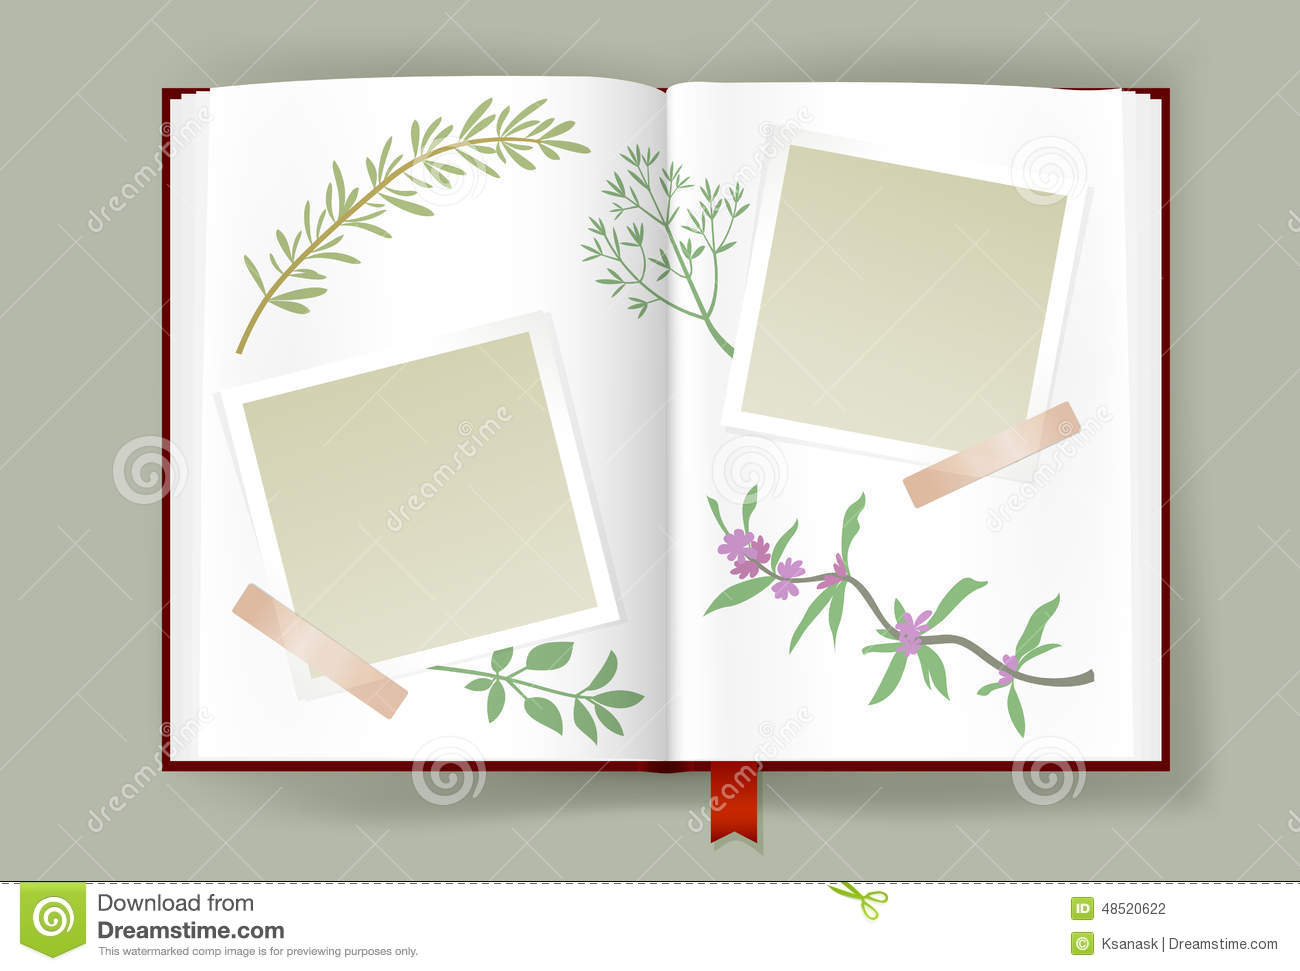 Opened Album With Blank Photo Frames And Aromatic Herbs